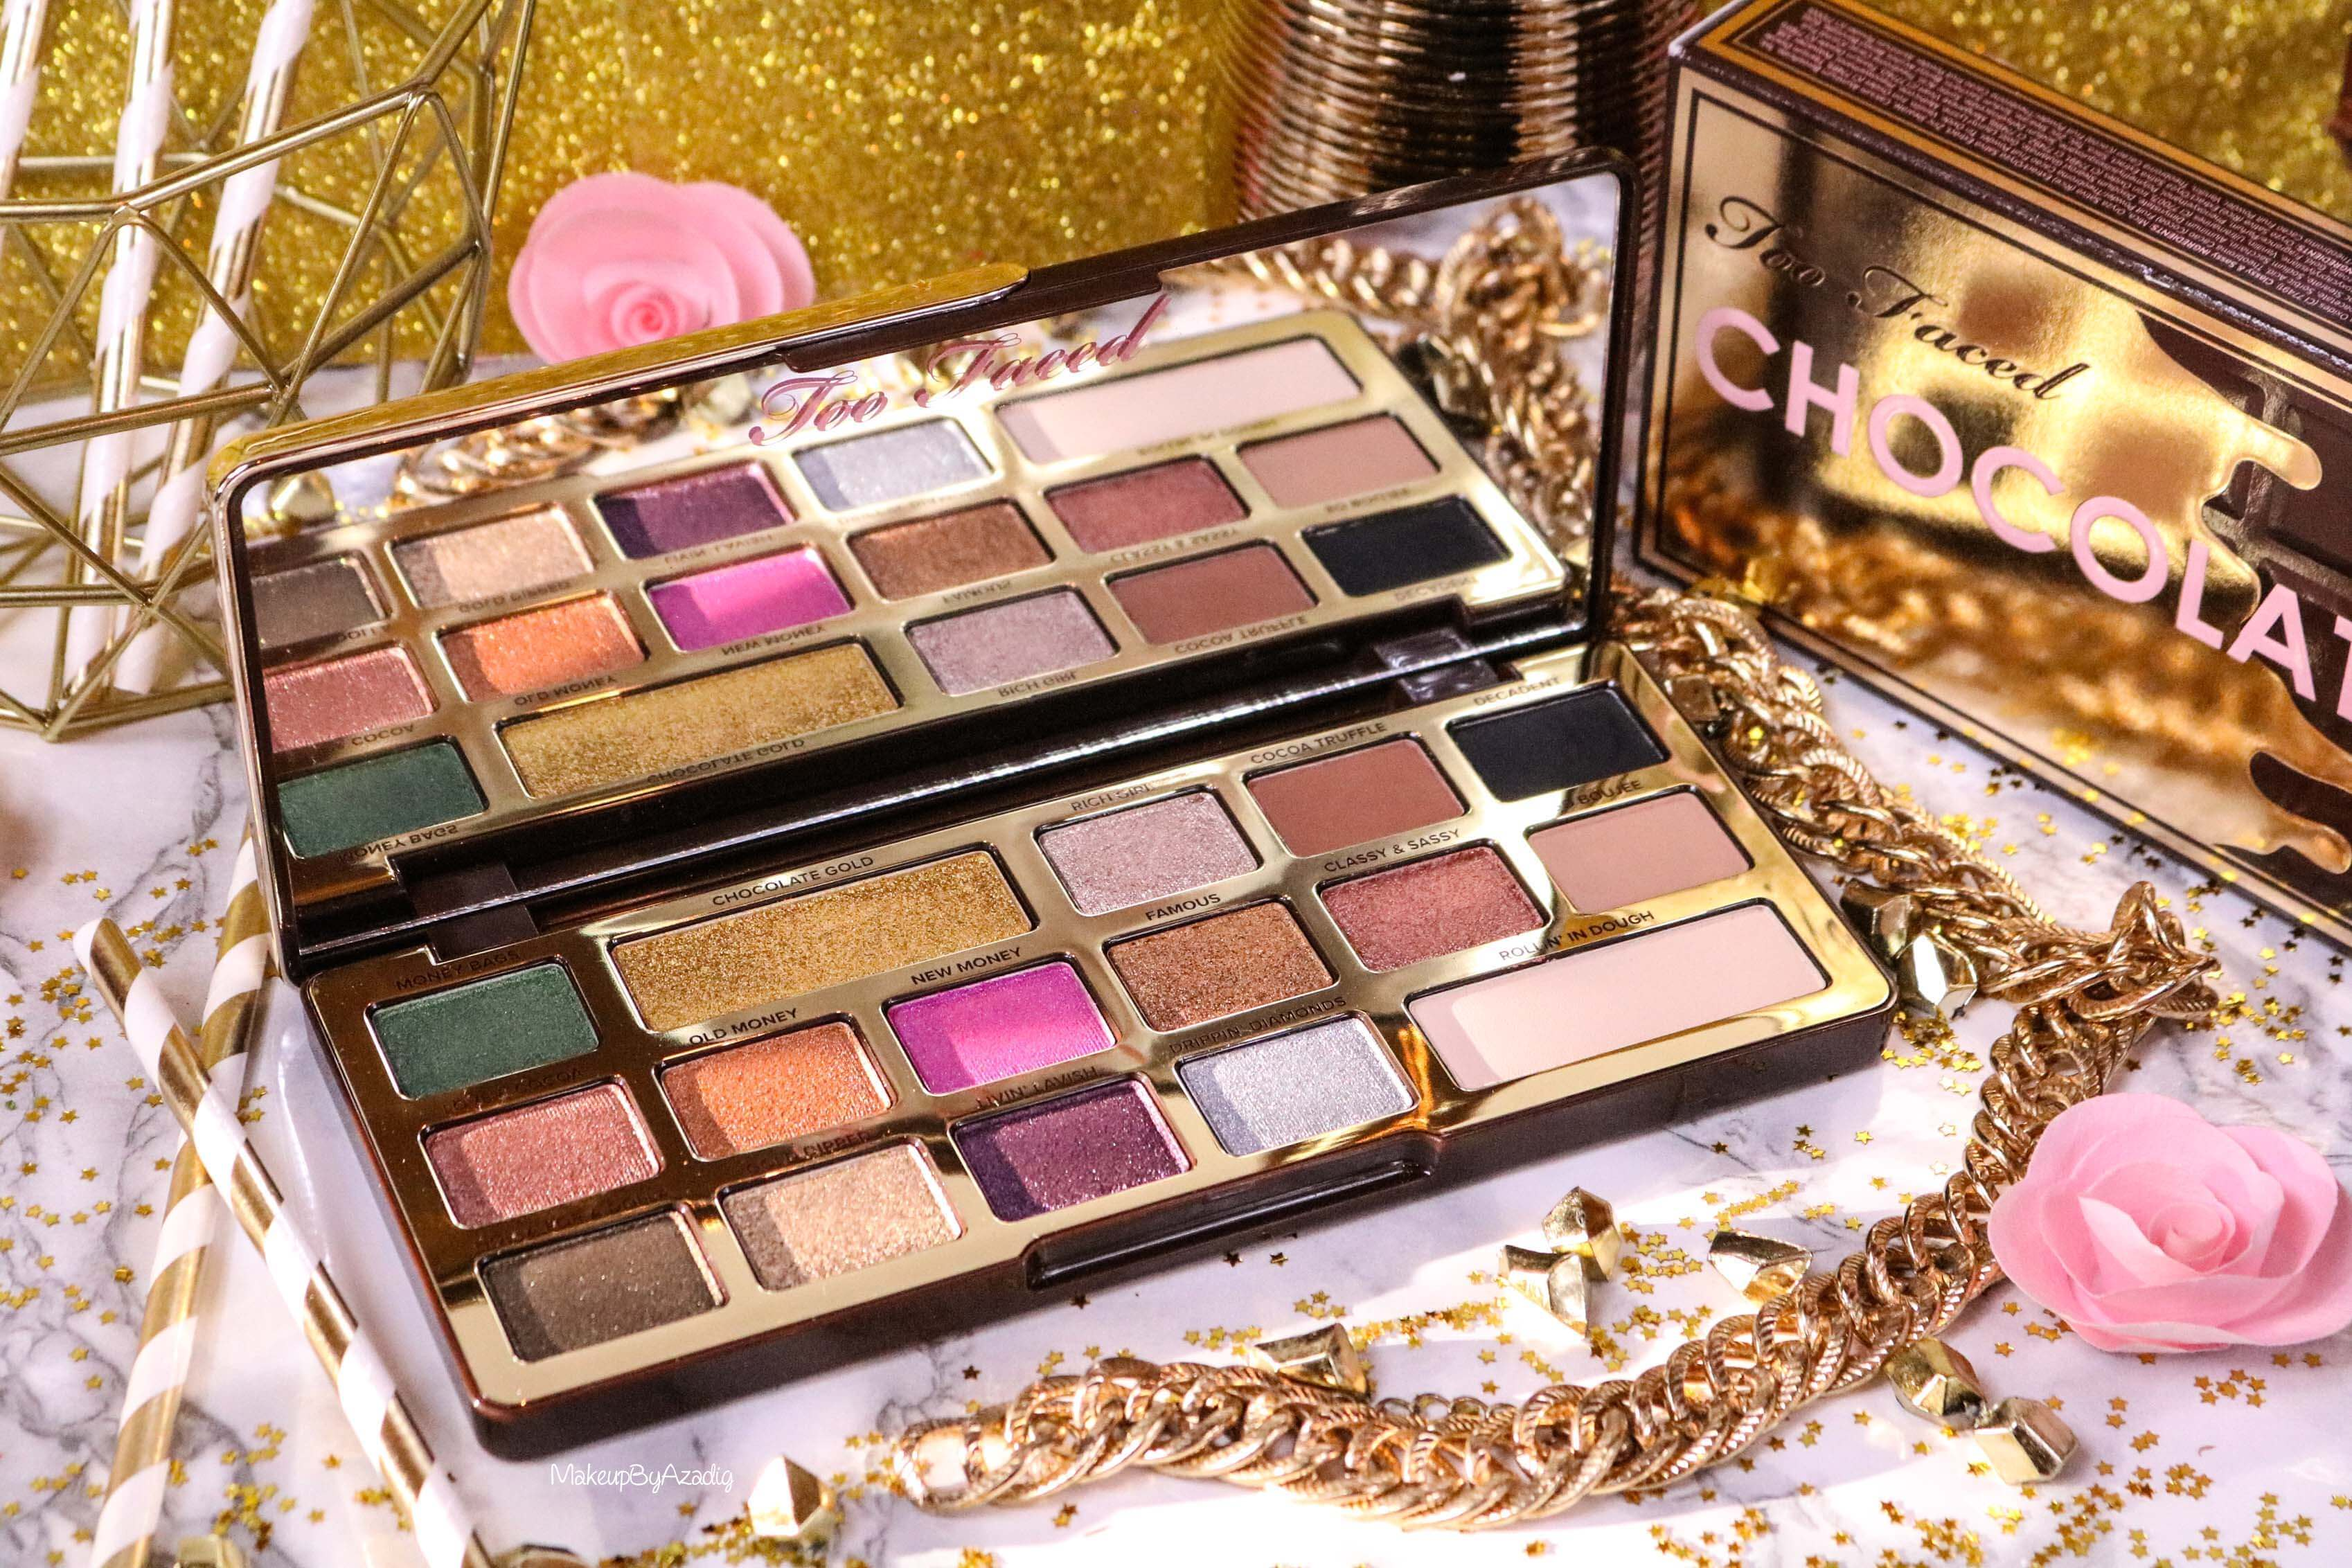 revue-palette-too-faced-chocolate-gold-review-swatch-swatches-avis-prix-makeupbyazadig-influencer-miniature